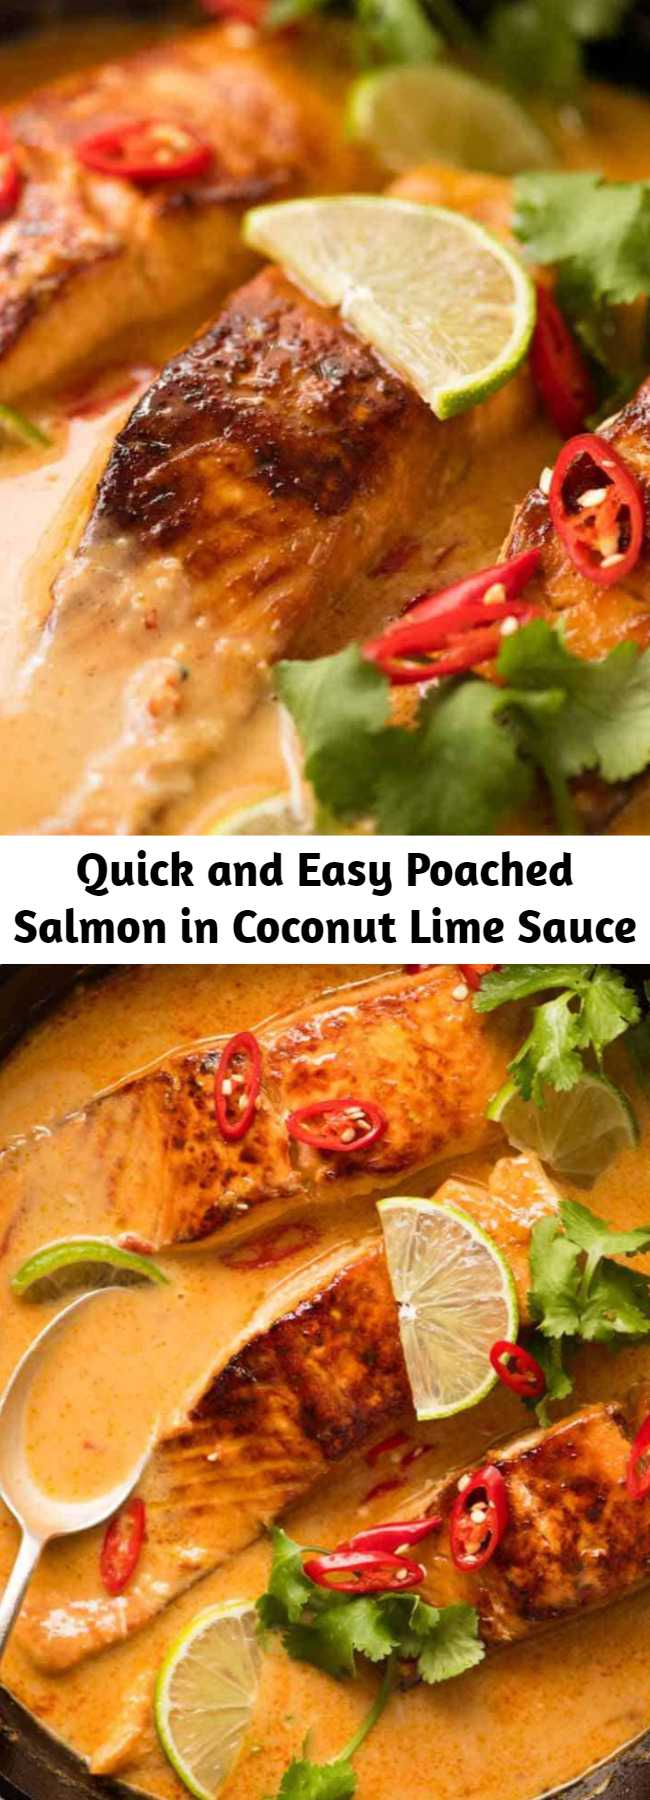 Quick and Easy Poached Salmon in Coconut Lime Sauce - Poached Salmon in a coconut lime sauce that tastes like a Thai coconut curry - except it's super quick and easy to make! Even though the salmon is poached, it's well worth searing lightly to brown for the extra flavour on both the salmon and in the sauce.